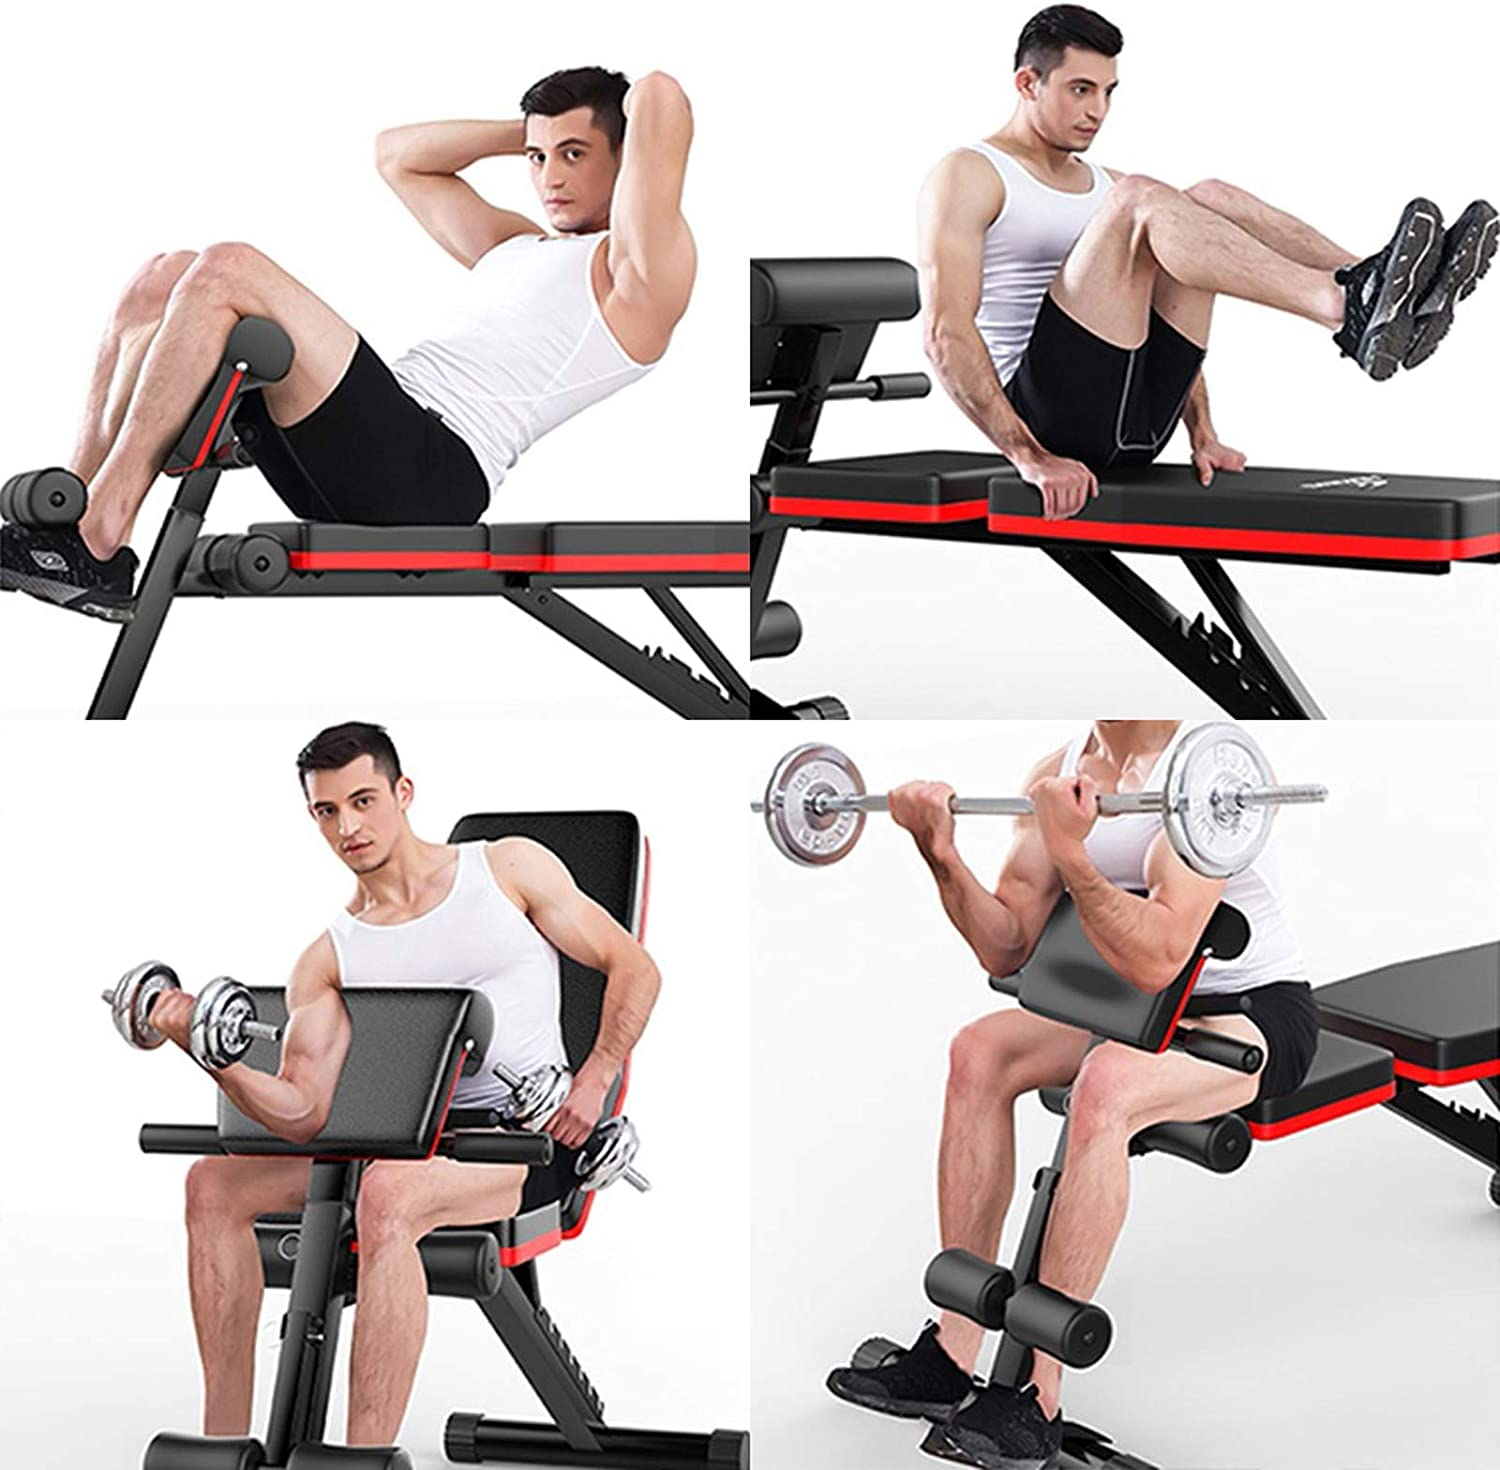 Adjustable Romes Chair Sit Up Incline Abs Benchs Flat Fly Weight Press Fitness Heavy Duty Steel Construction Black